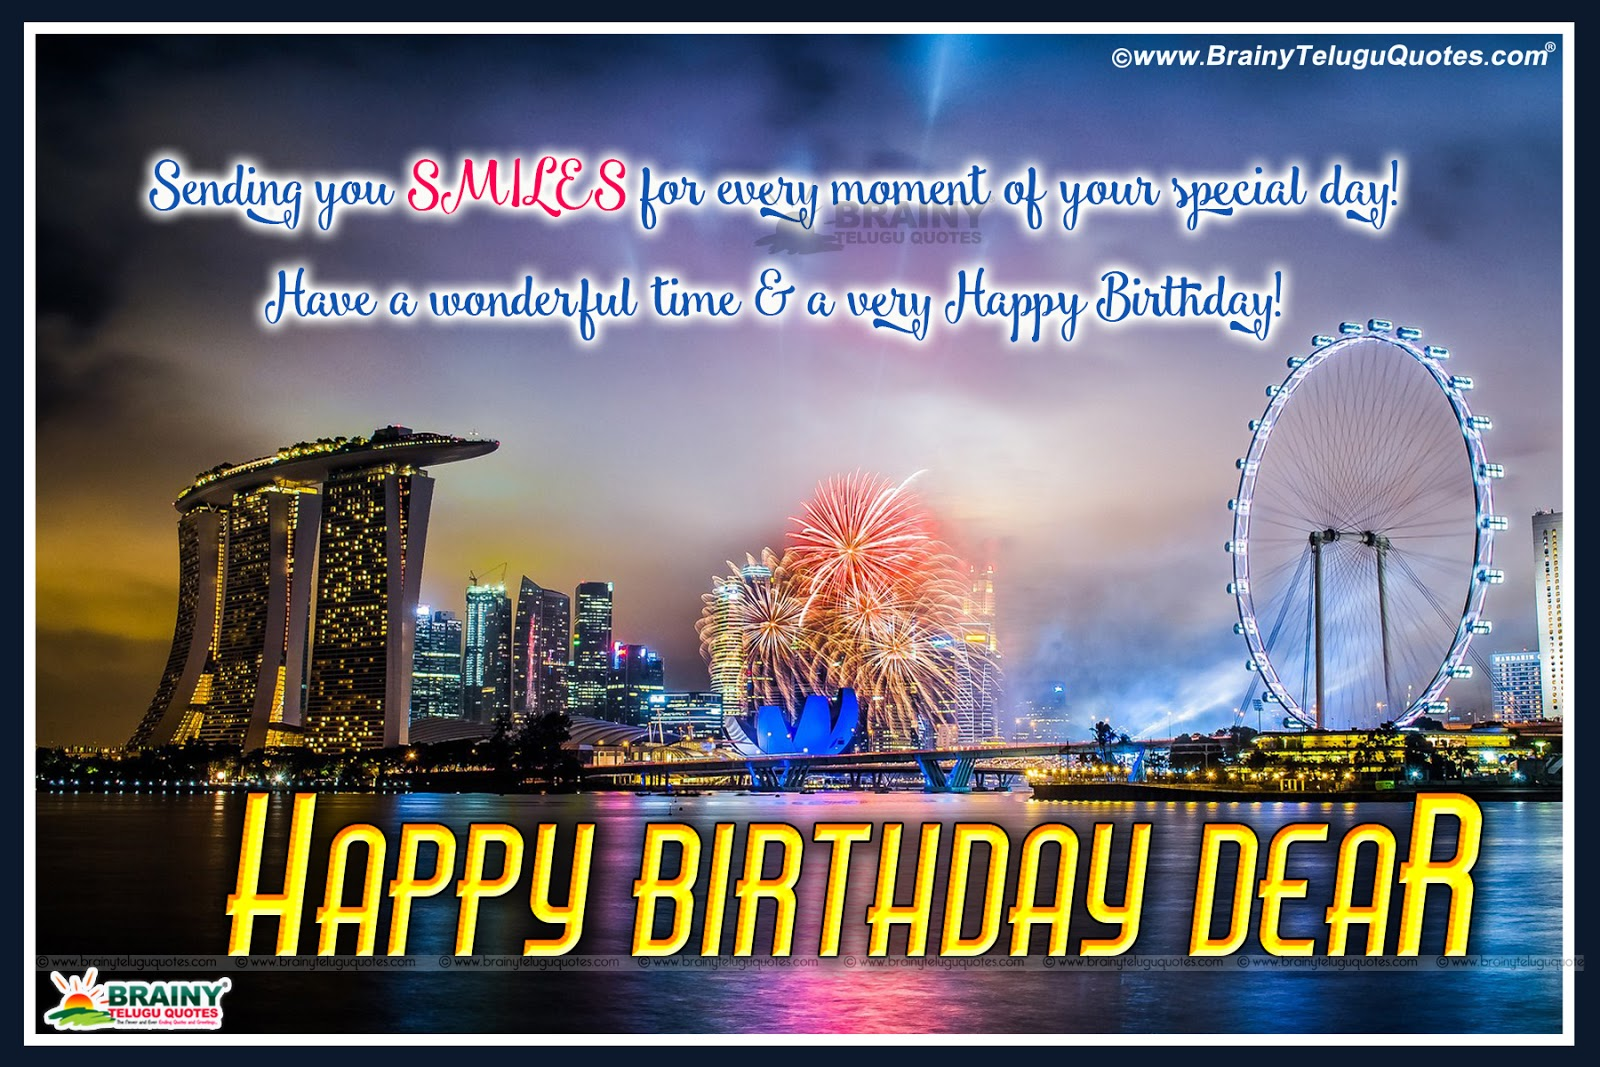 Birthday Quotes Lover In Telugu Happy Birthday Wishes For A Friend - Best Birthday Wishes